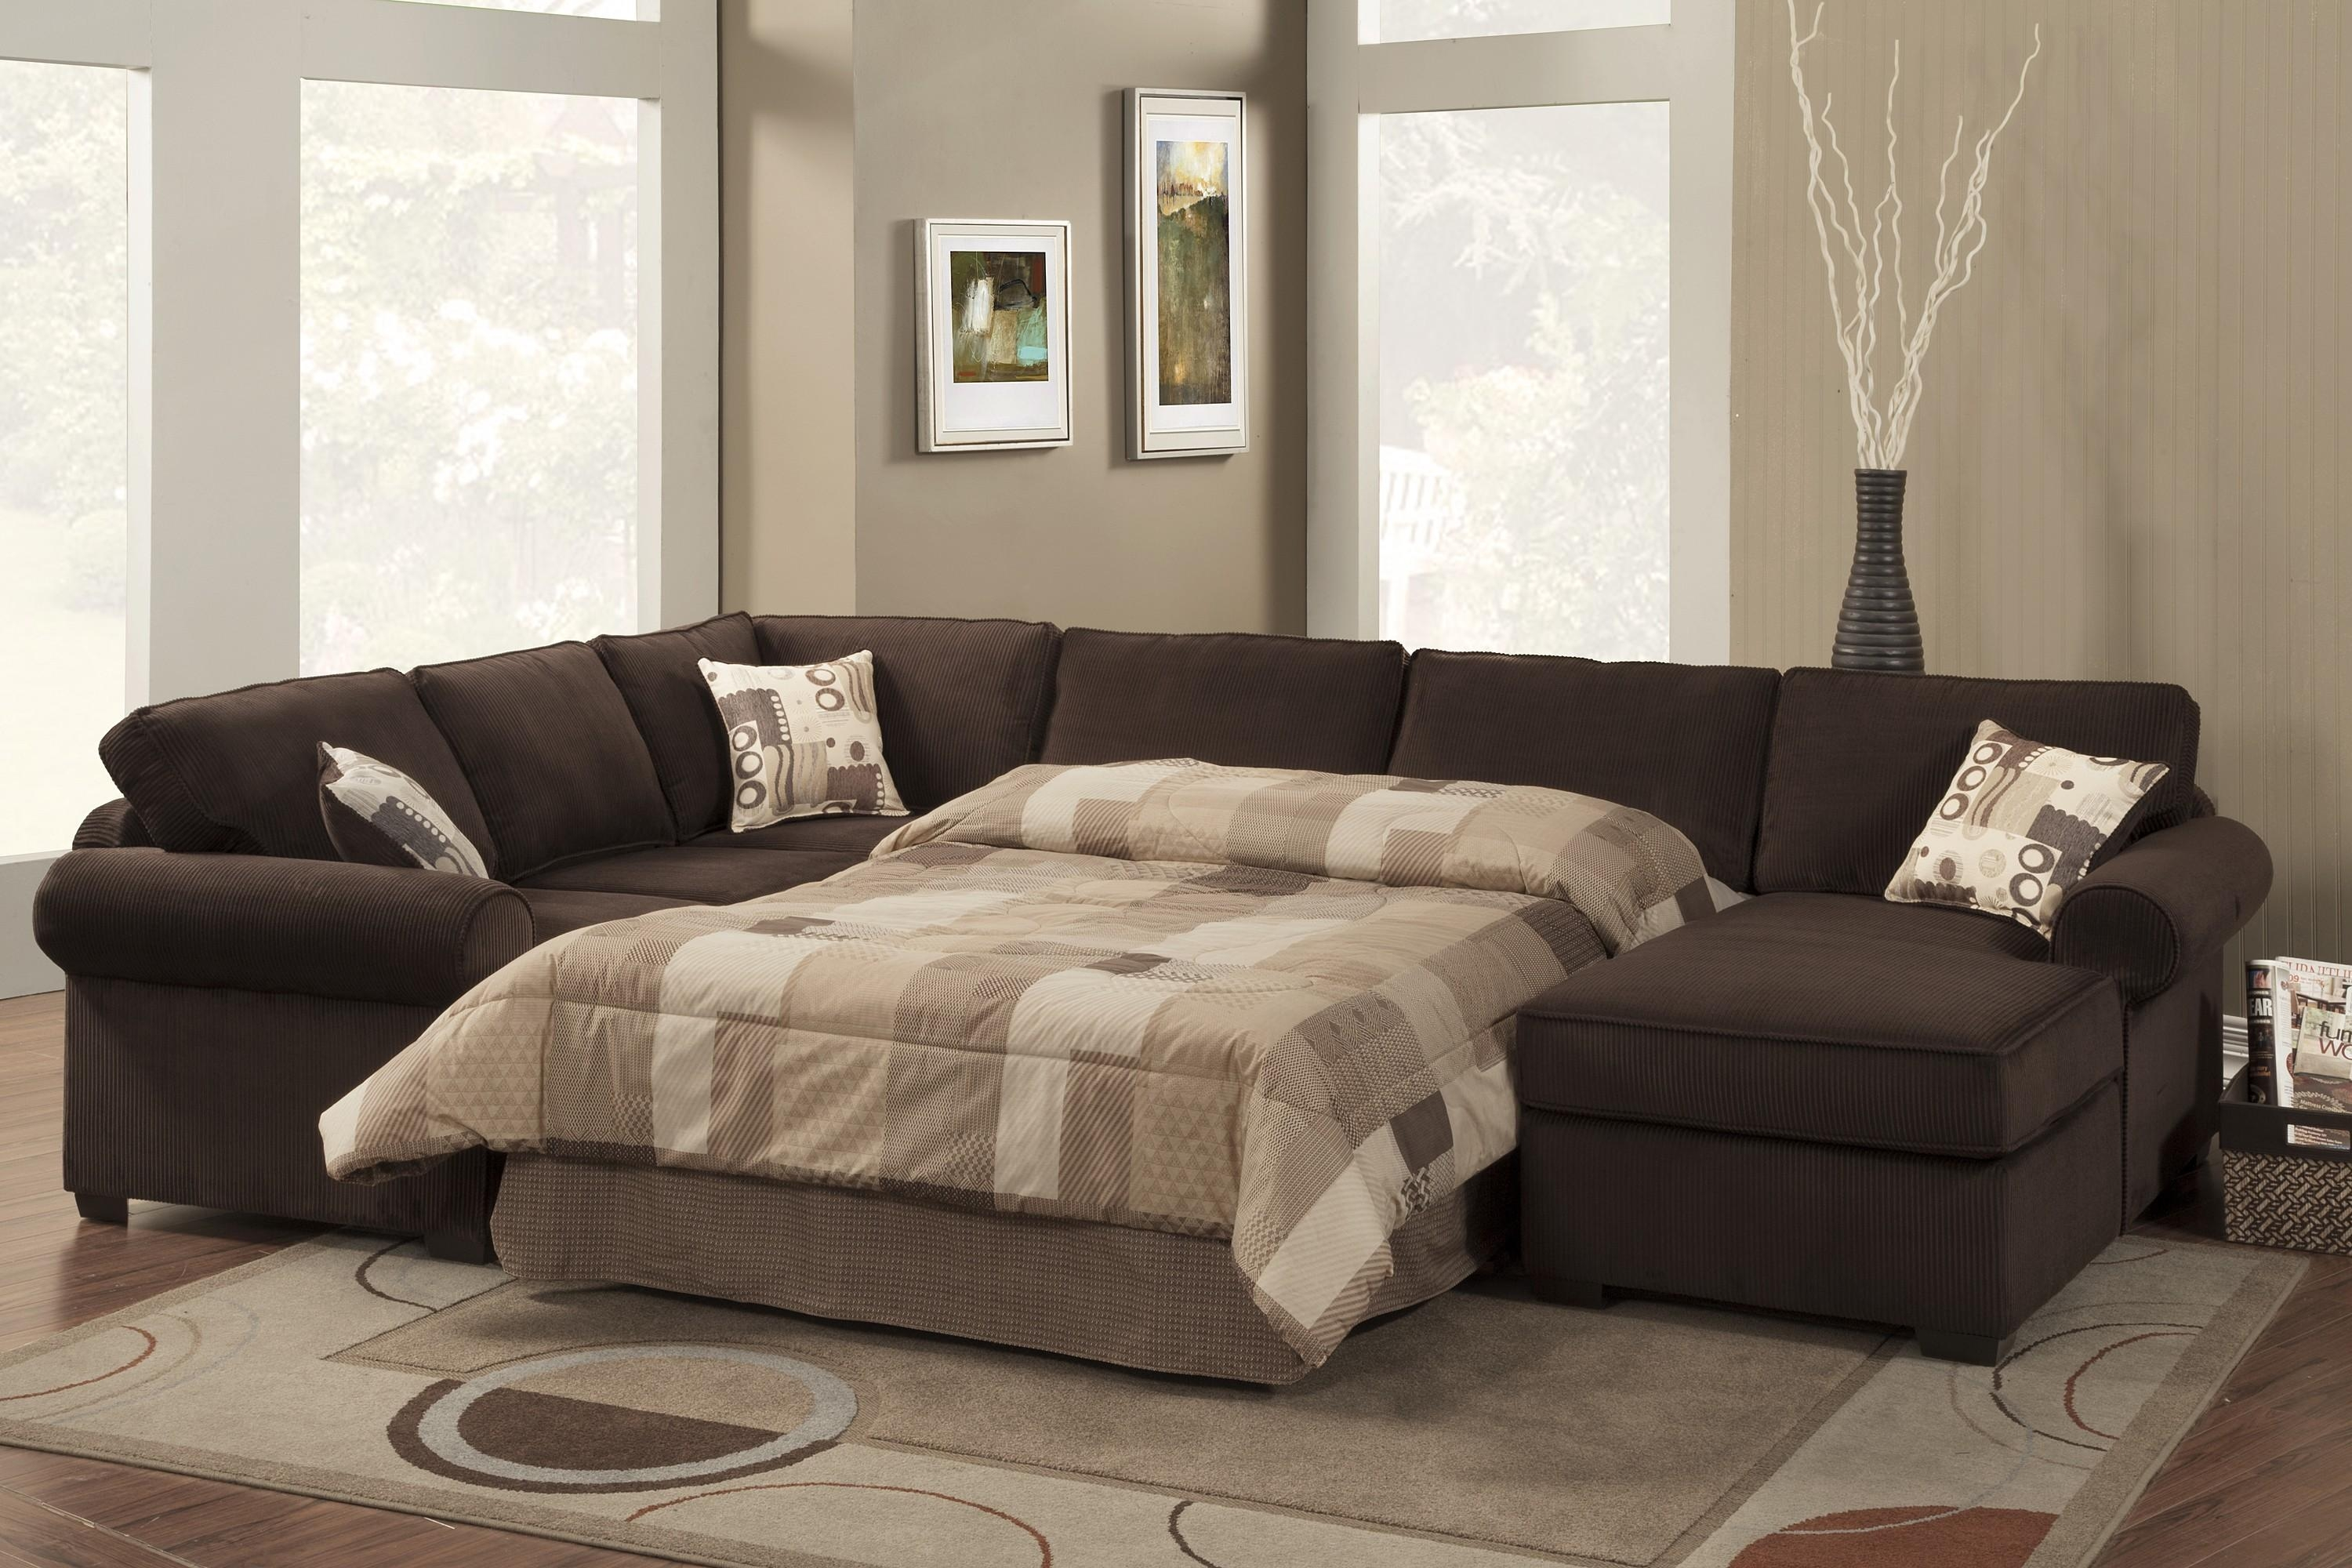 Furniture: Contemporary Sectional Sofas | Sectional Sleeper Sofa For Sectional Sofas With Sleeper And Chaise (Image 6 of 21)